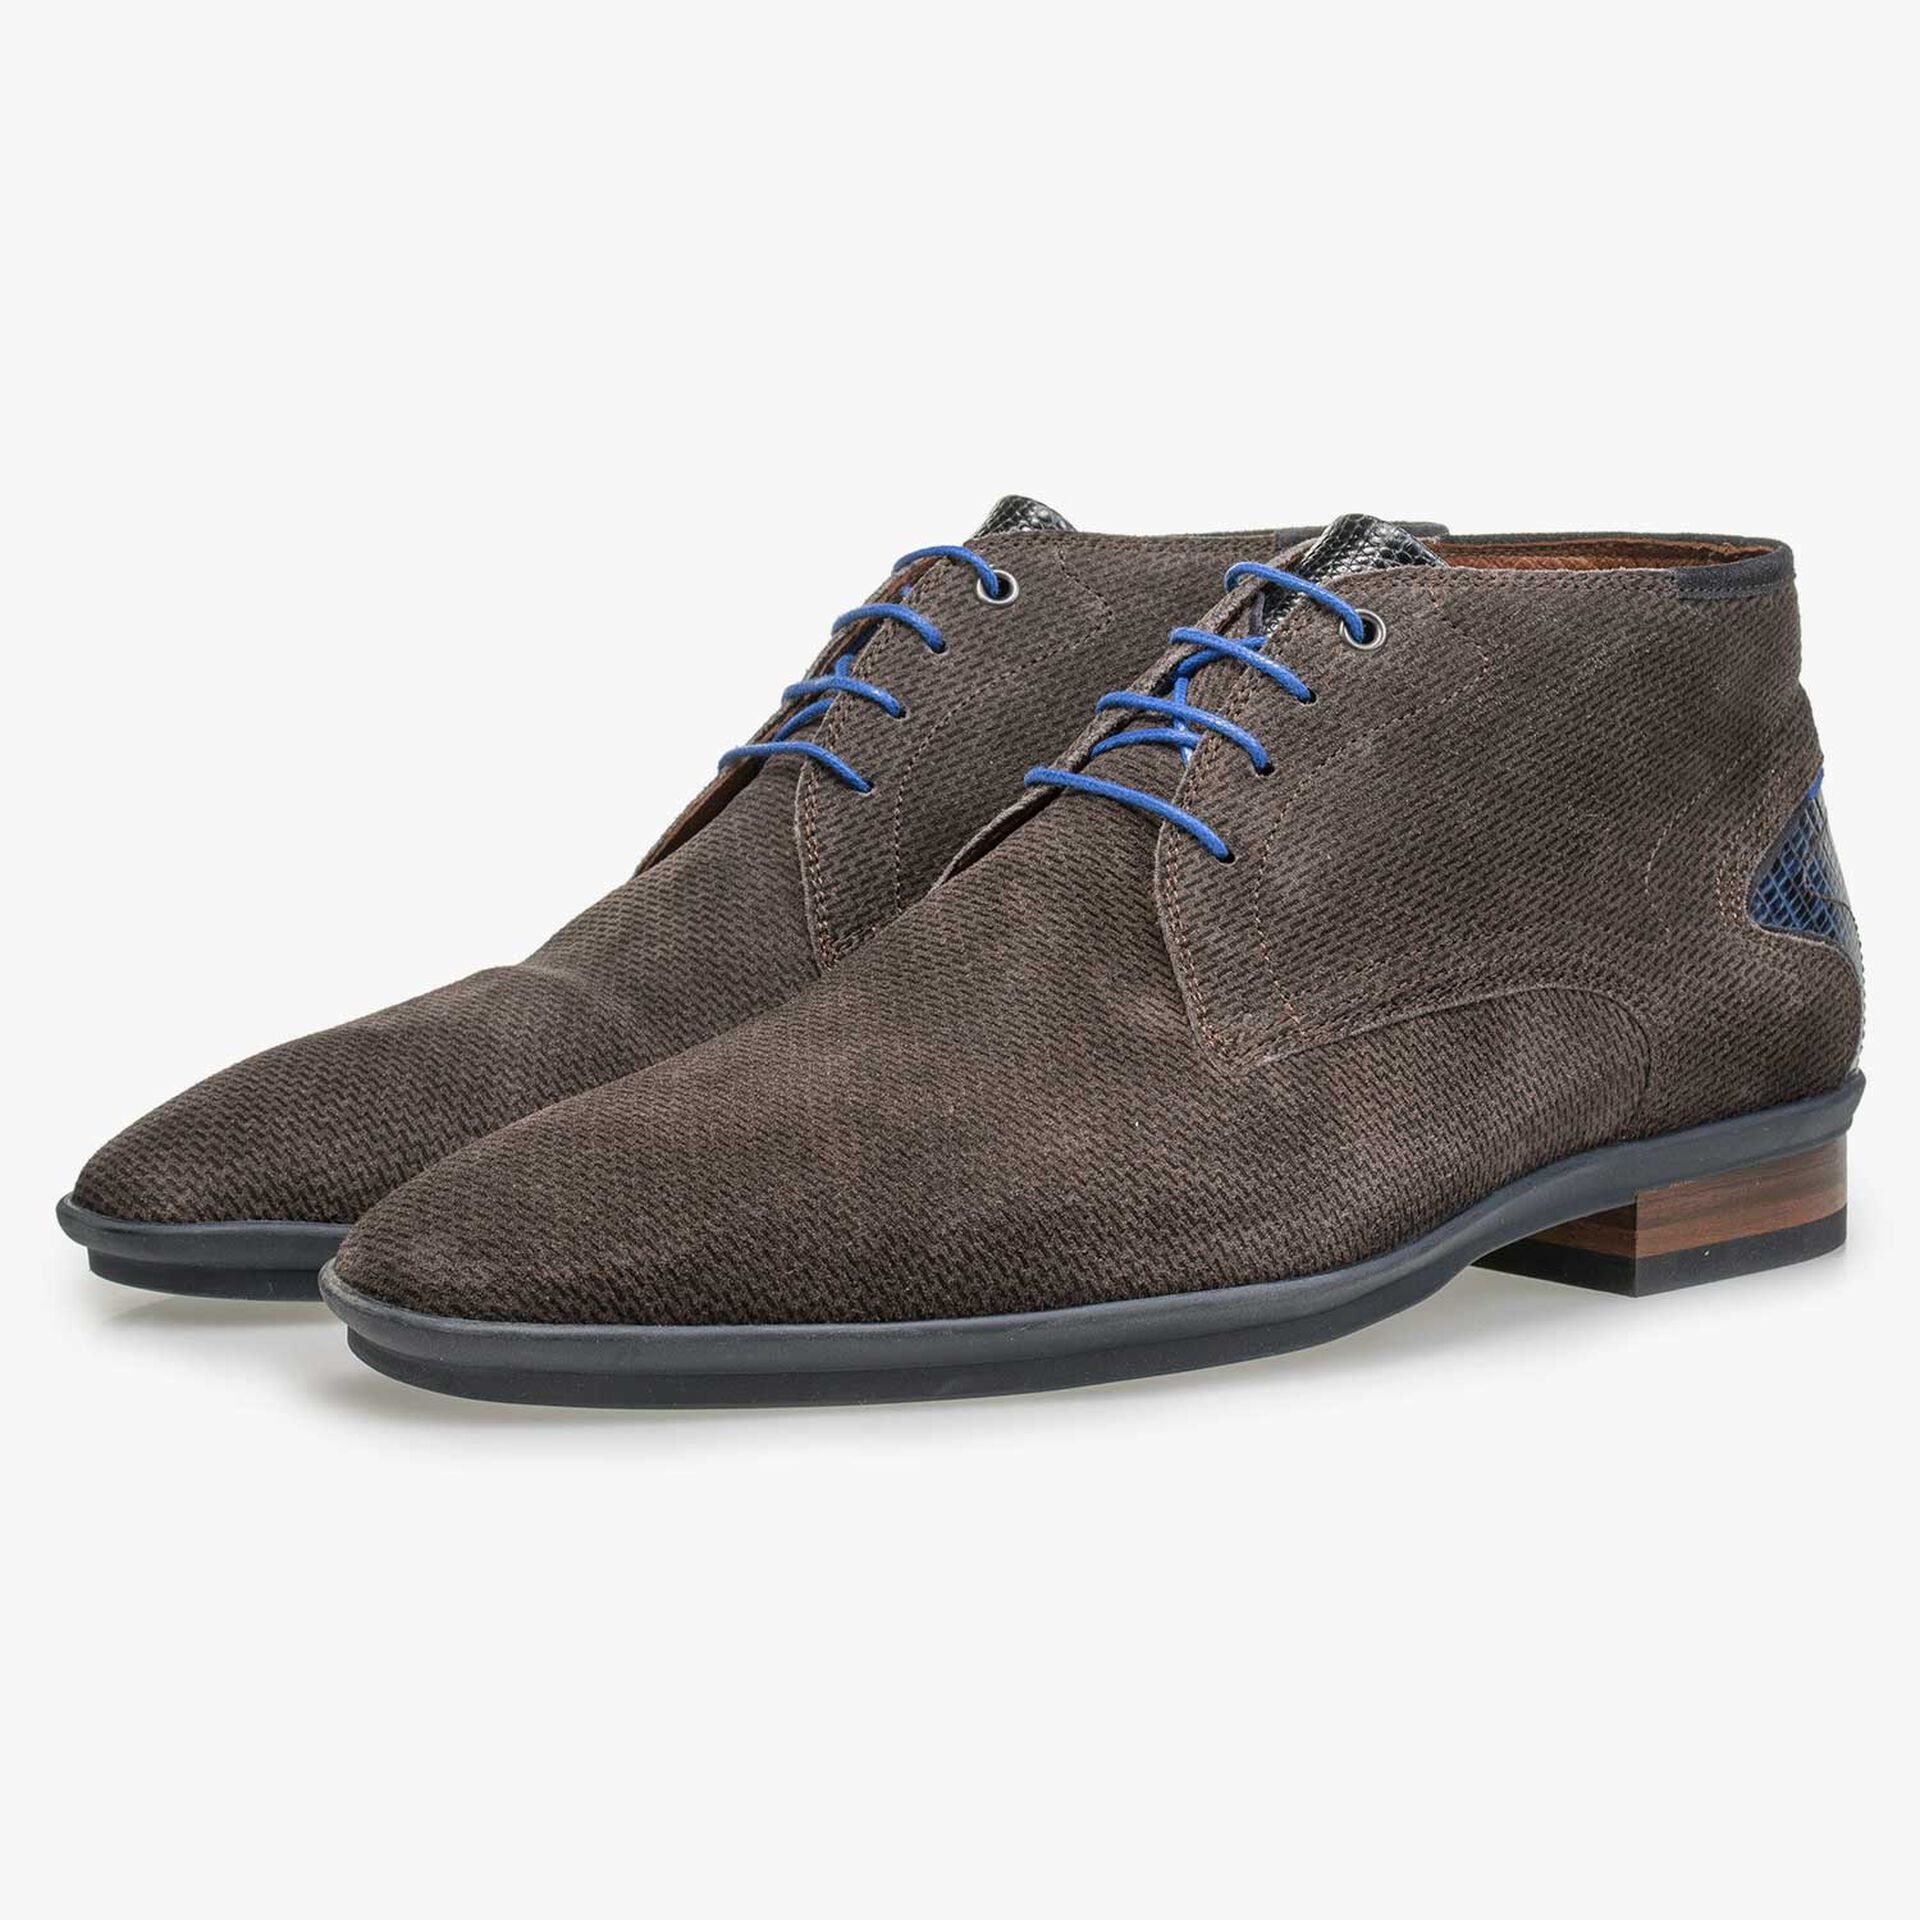 Mid-high grey-brown suede leather lace shoe